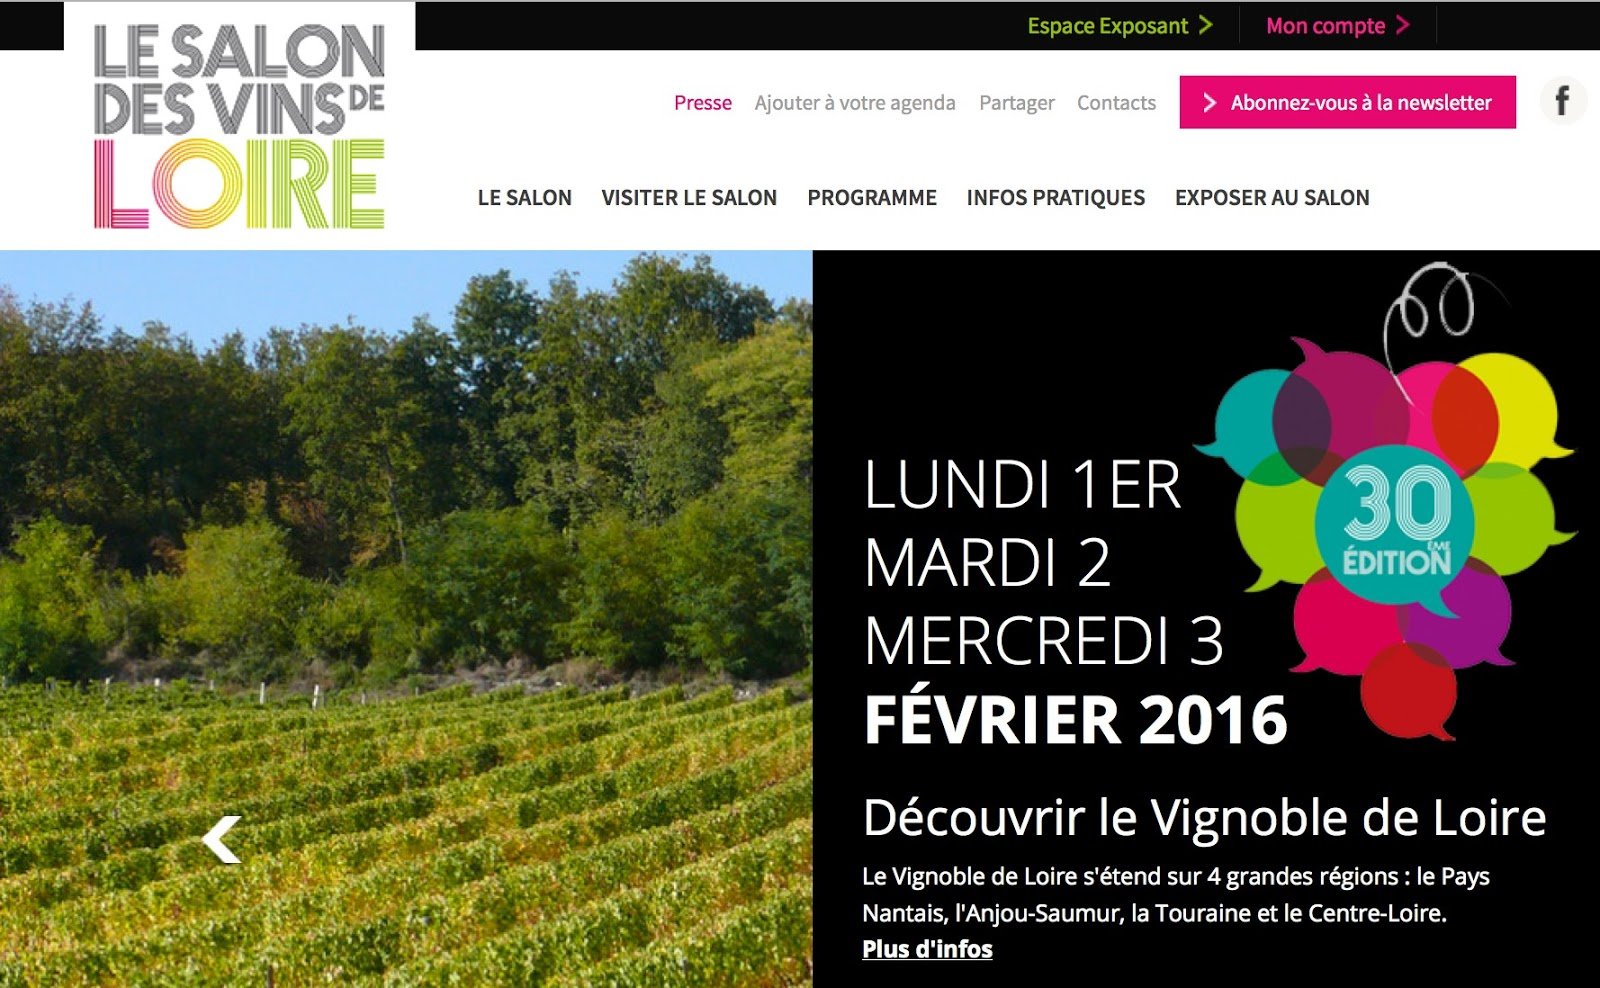 Jim 39 s loire 30th salon des vins de loire a few photos - Salon des vins ampuis ...